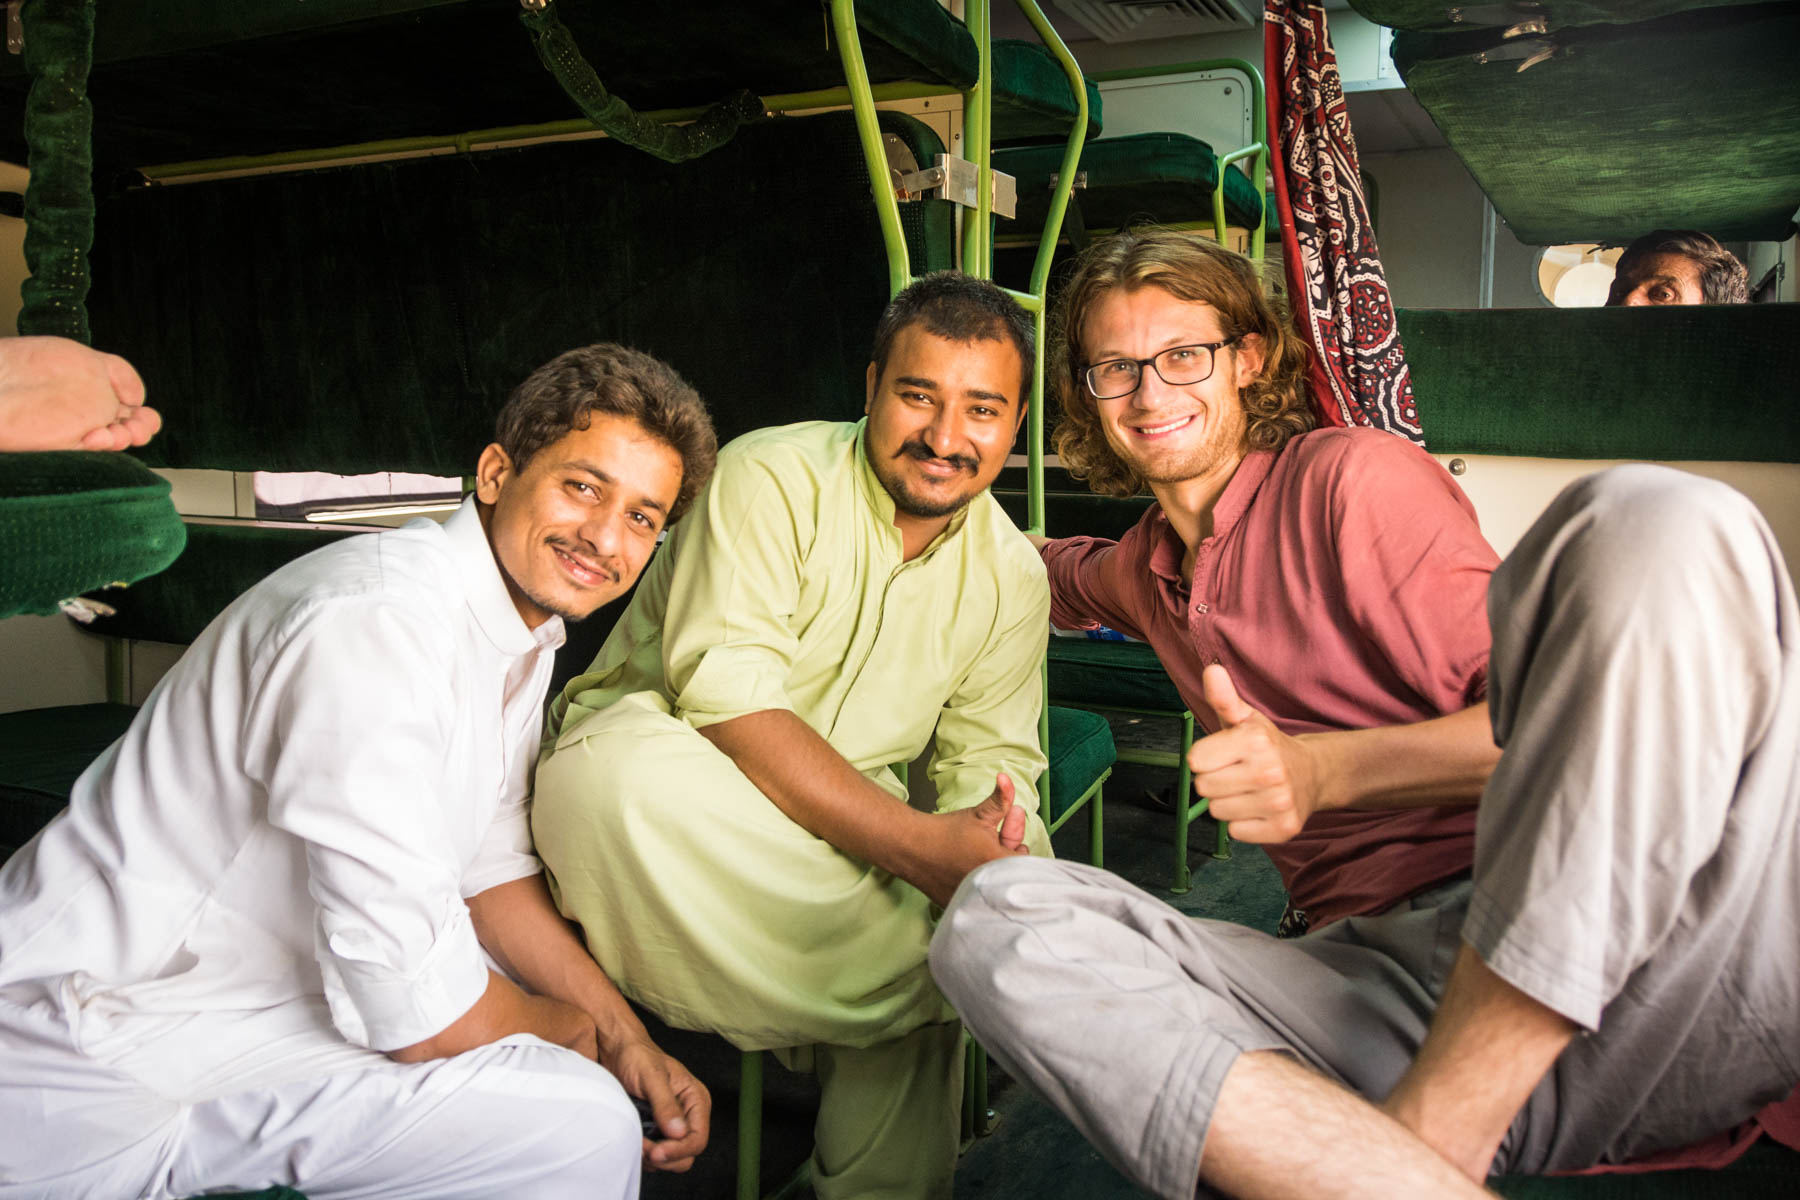 Making friends on the train in Pakistan